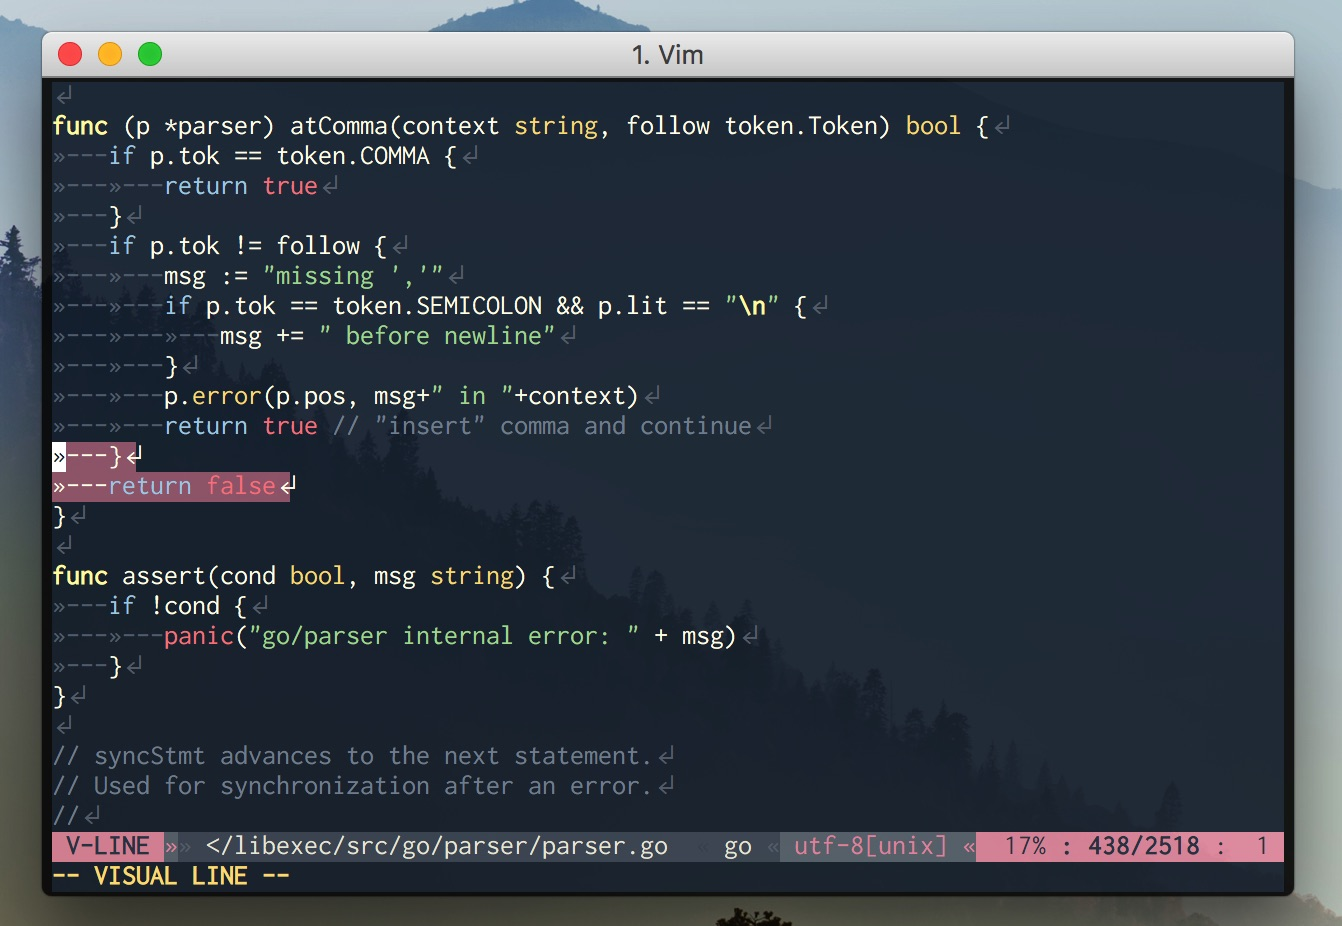 Go on Vim (24bit color)